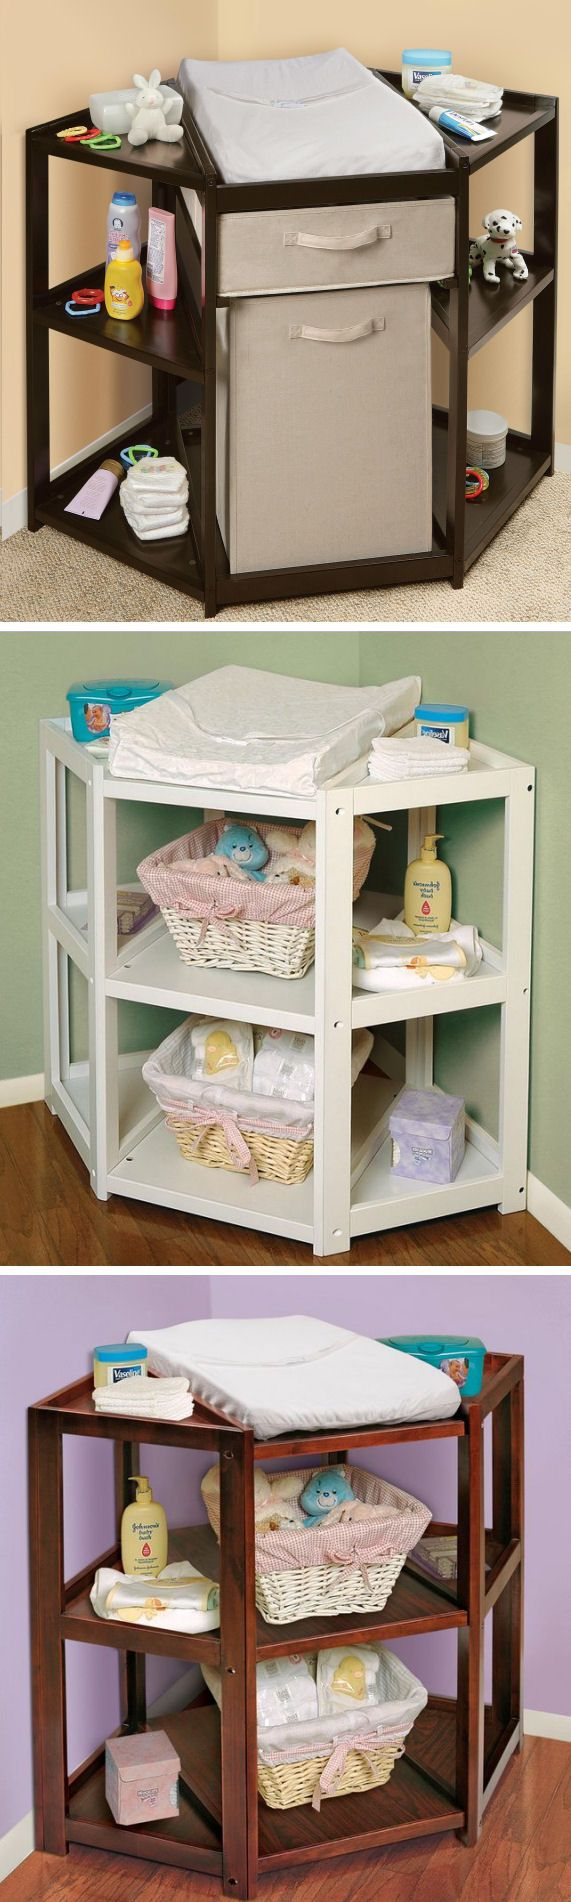 A Better Changing Table. Who Decided Changing A Baby From The Side Was A  Good Idea! Loving This Corner Changing Table, Never Used Our Last One  Because ...